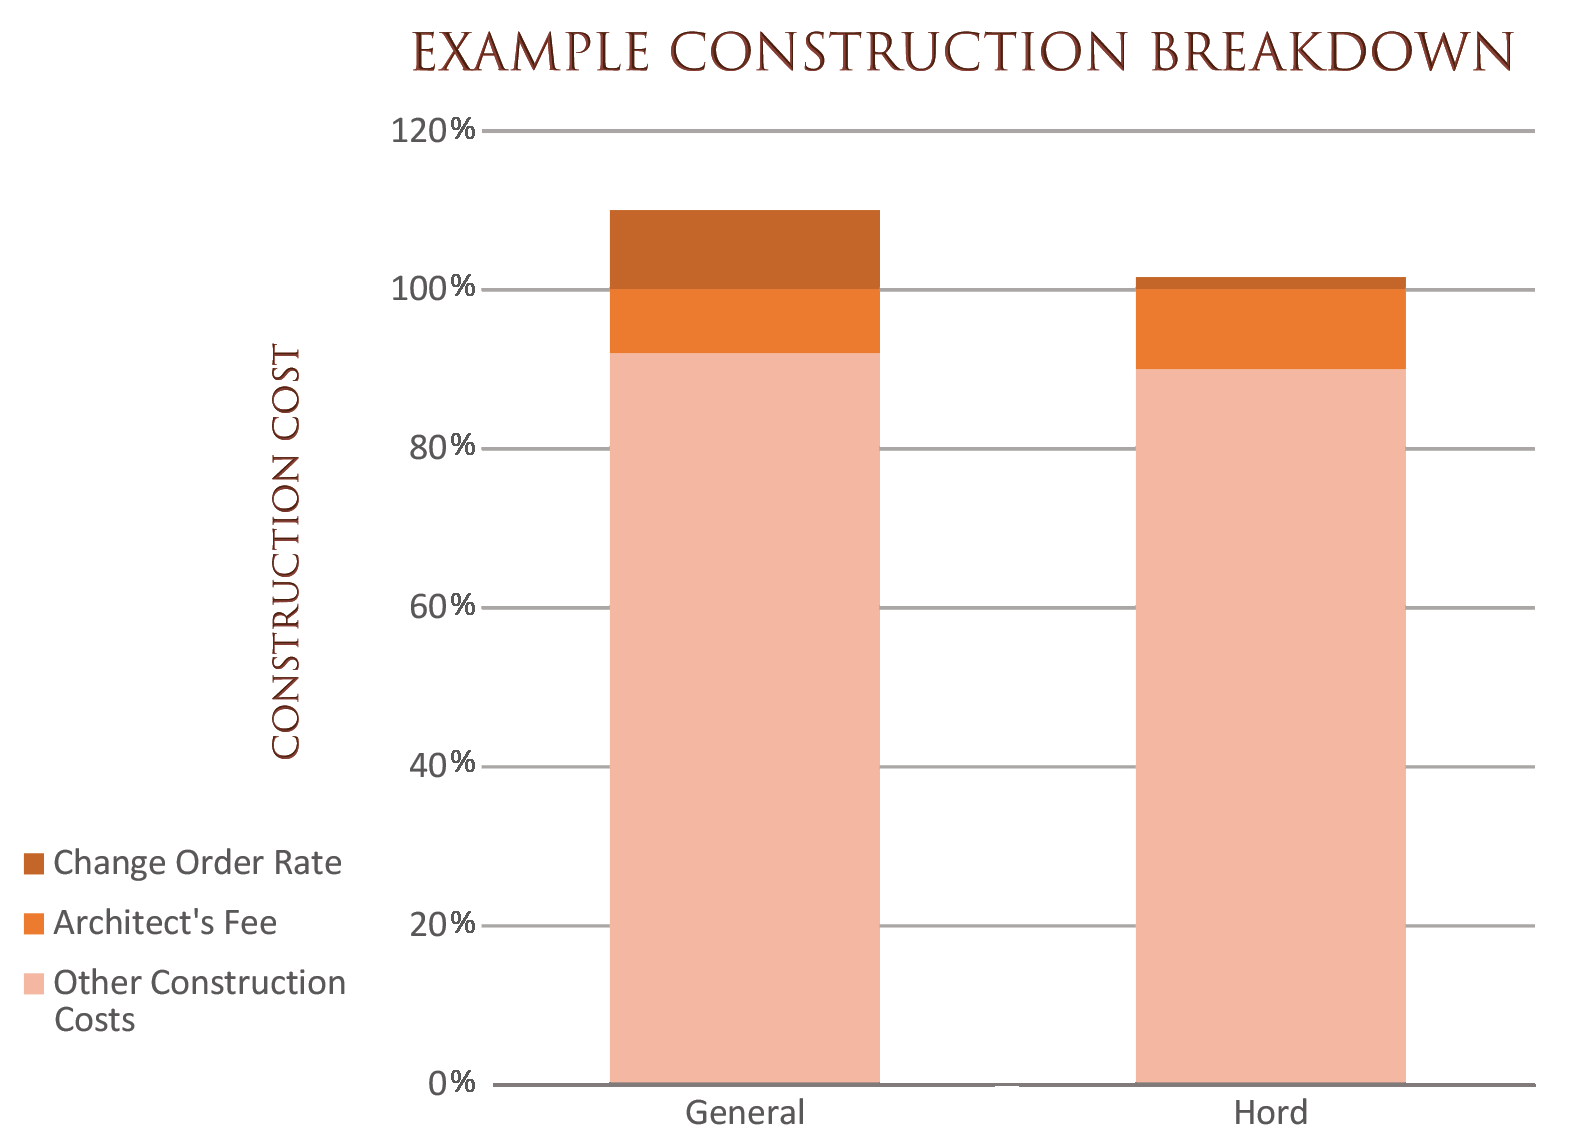 All things being equal, this hypothetical client will spend the same amount on construction costs regardless of the architect they choose. However, the change order percentage with an average architect will be much higher, inflating the total cost of the project.